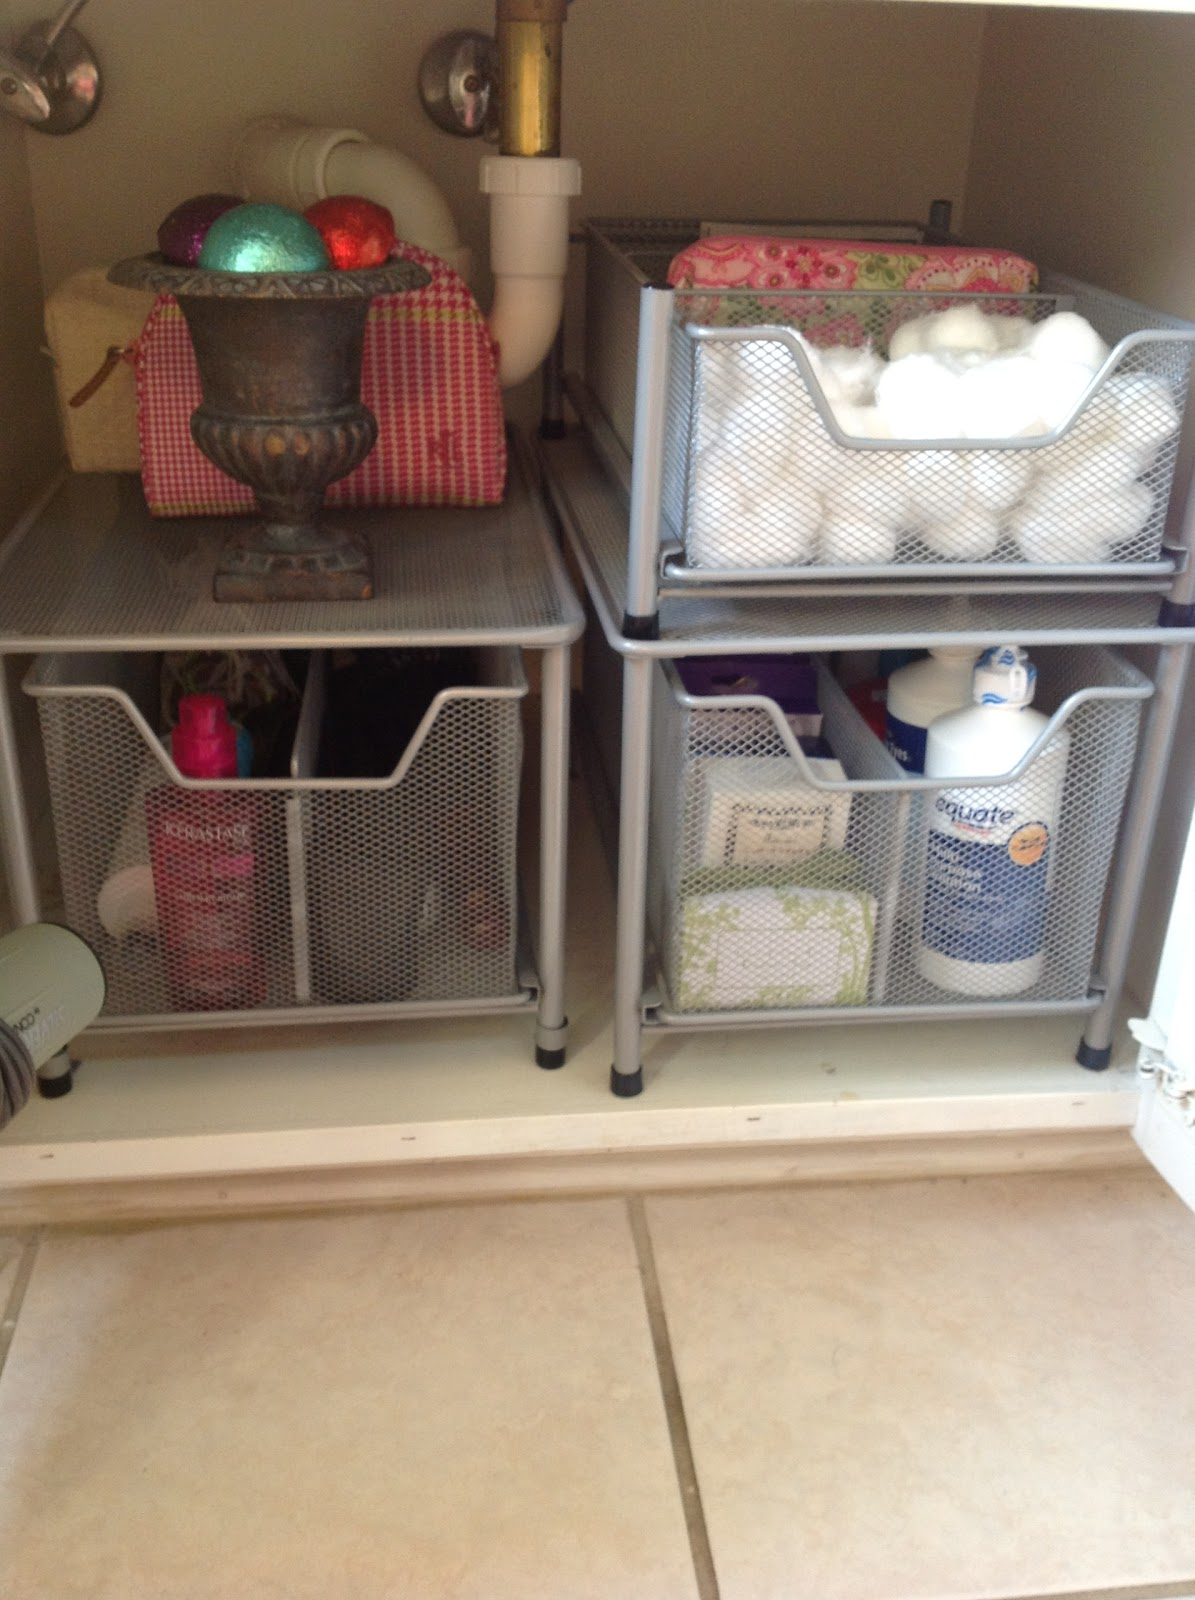 o is for organize under the bathroom sink bathroom sink storage ideas bathroom under sink storage